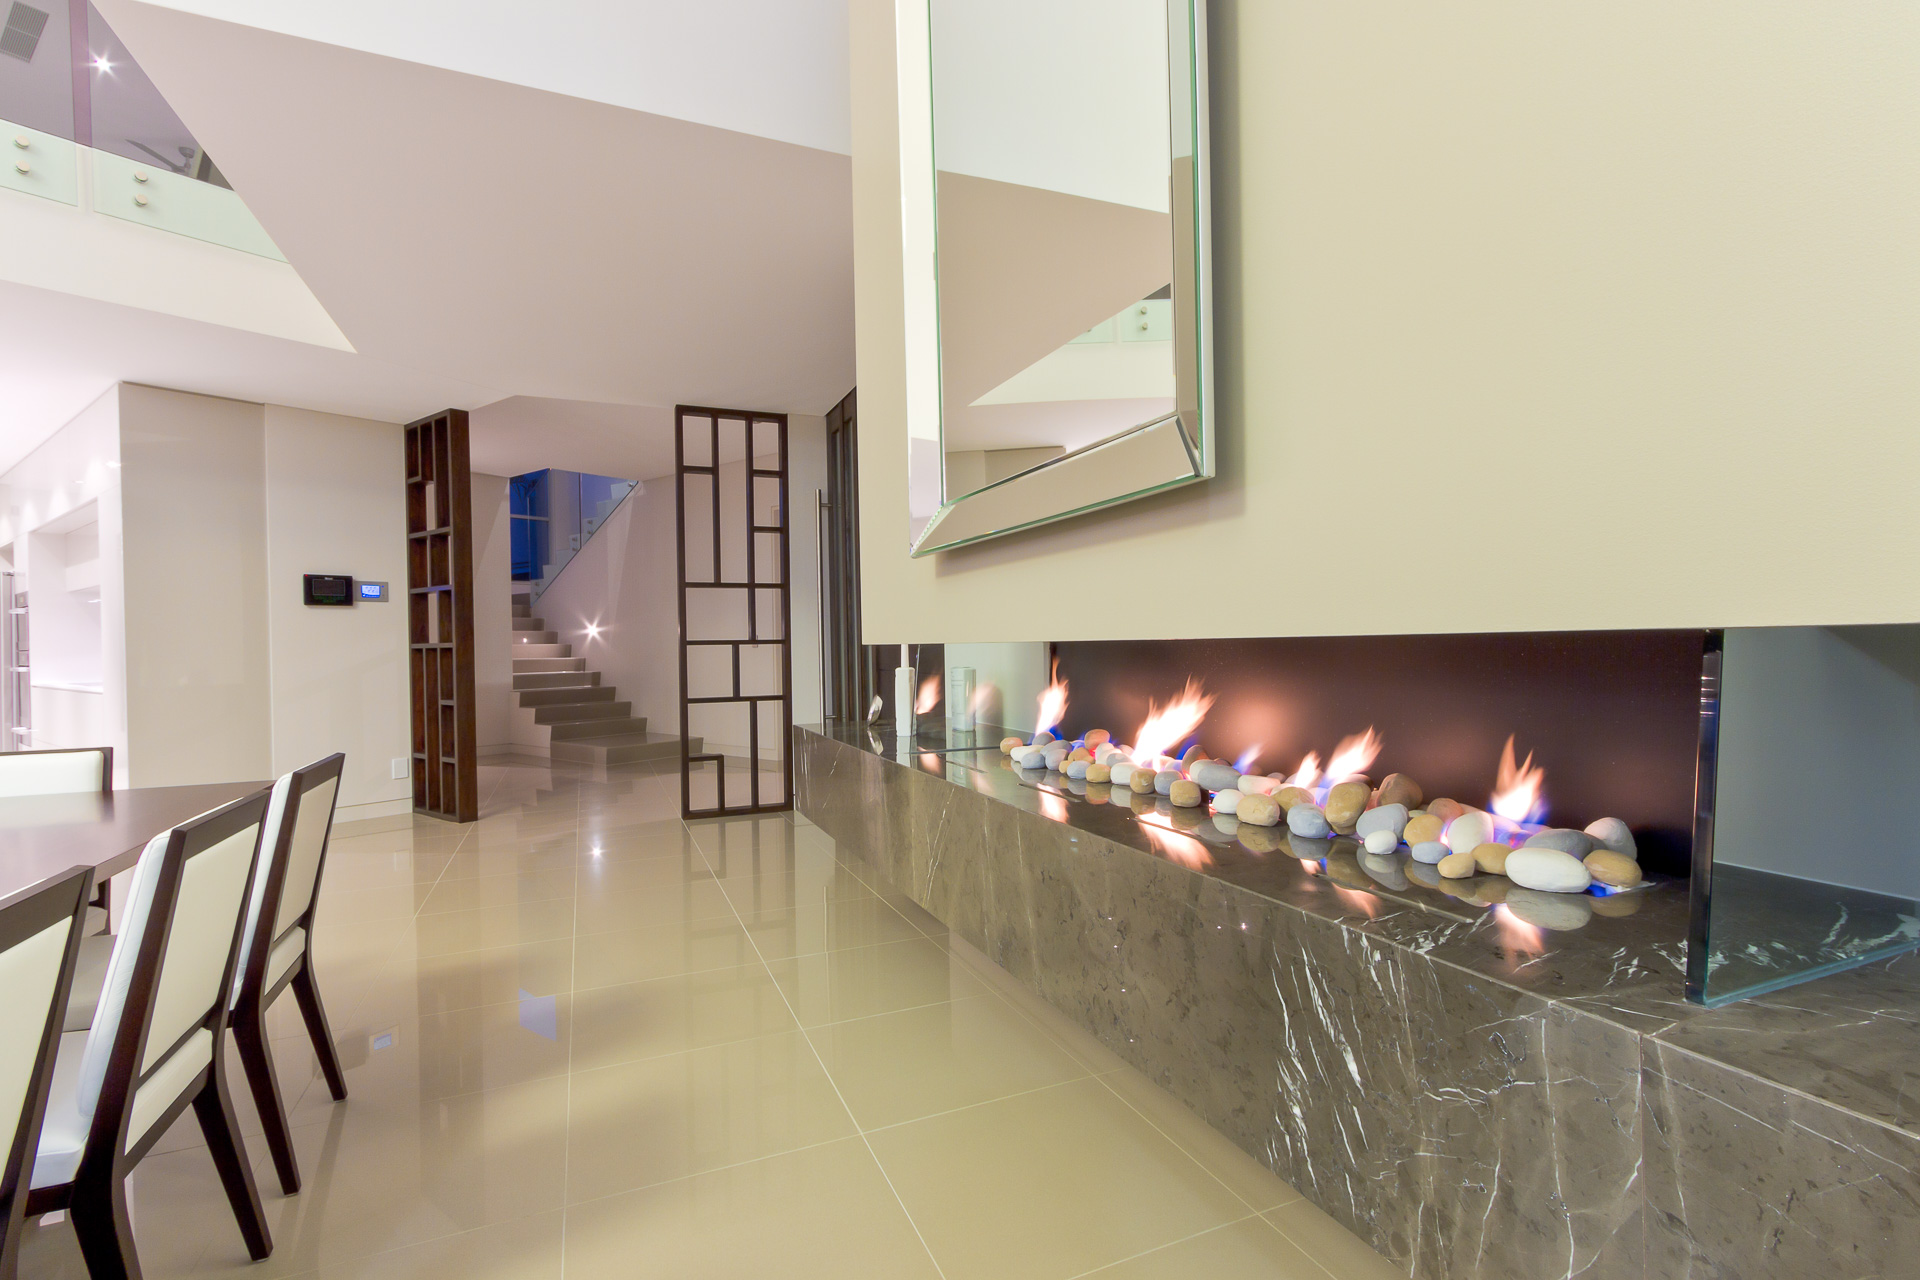 Kitchen, fireplace, living, pietra grey, Pietra marble, modern, Caesarstone, Minka joinery, luxury, Coolum